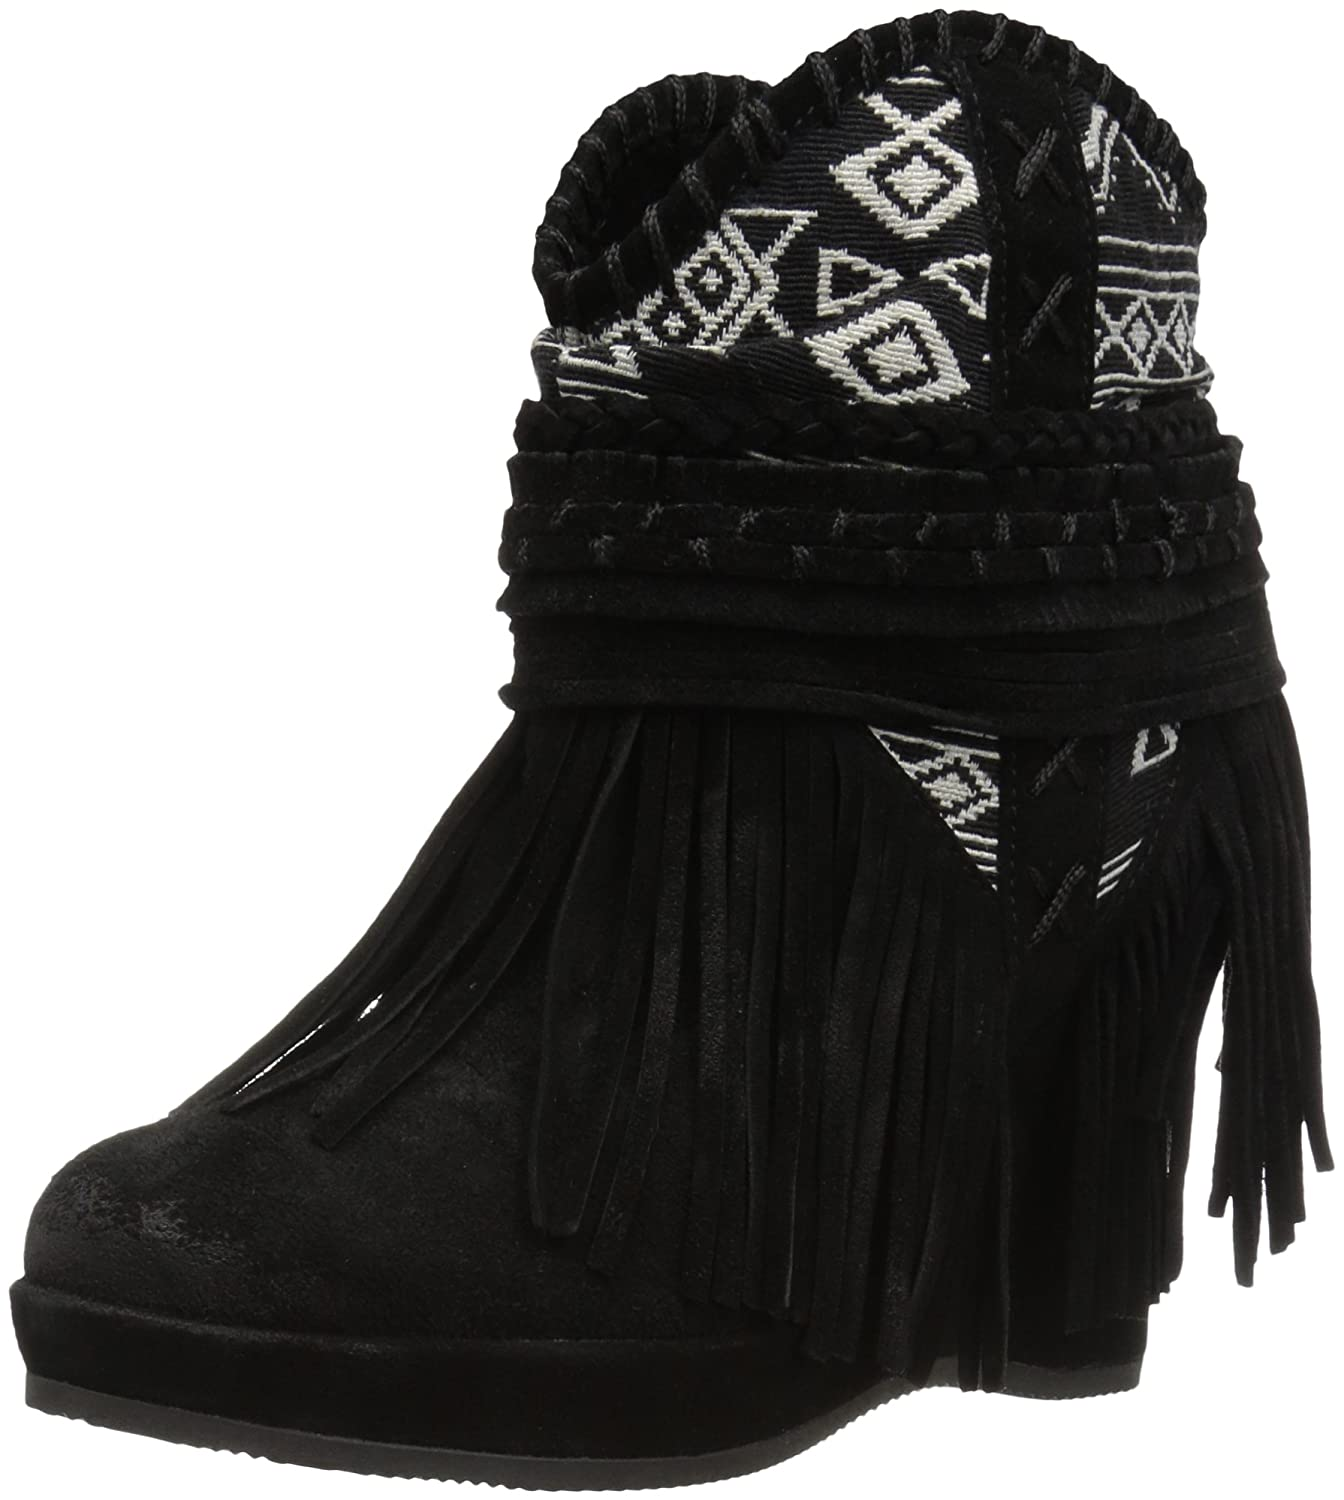 Naughty Monkey Women's Canyon Dream Ankle Bootie B01H2BRPM0 9 B(M) US|Black